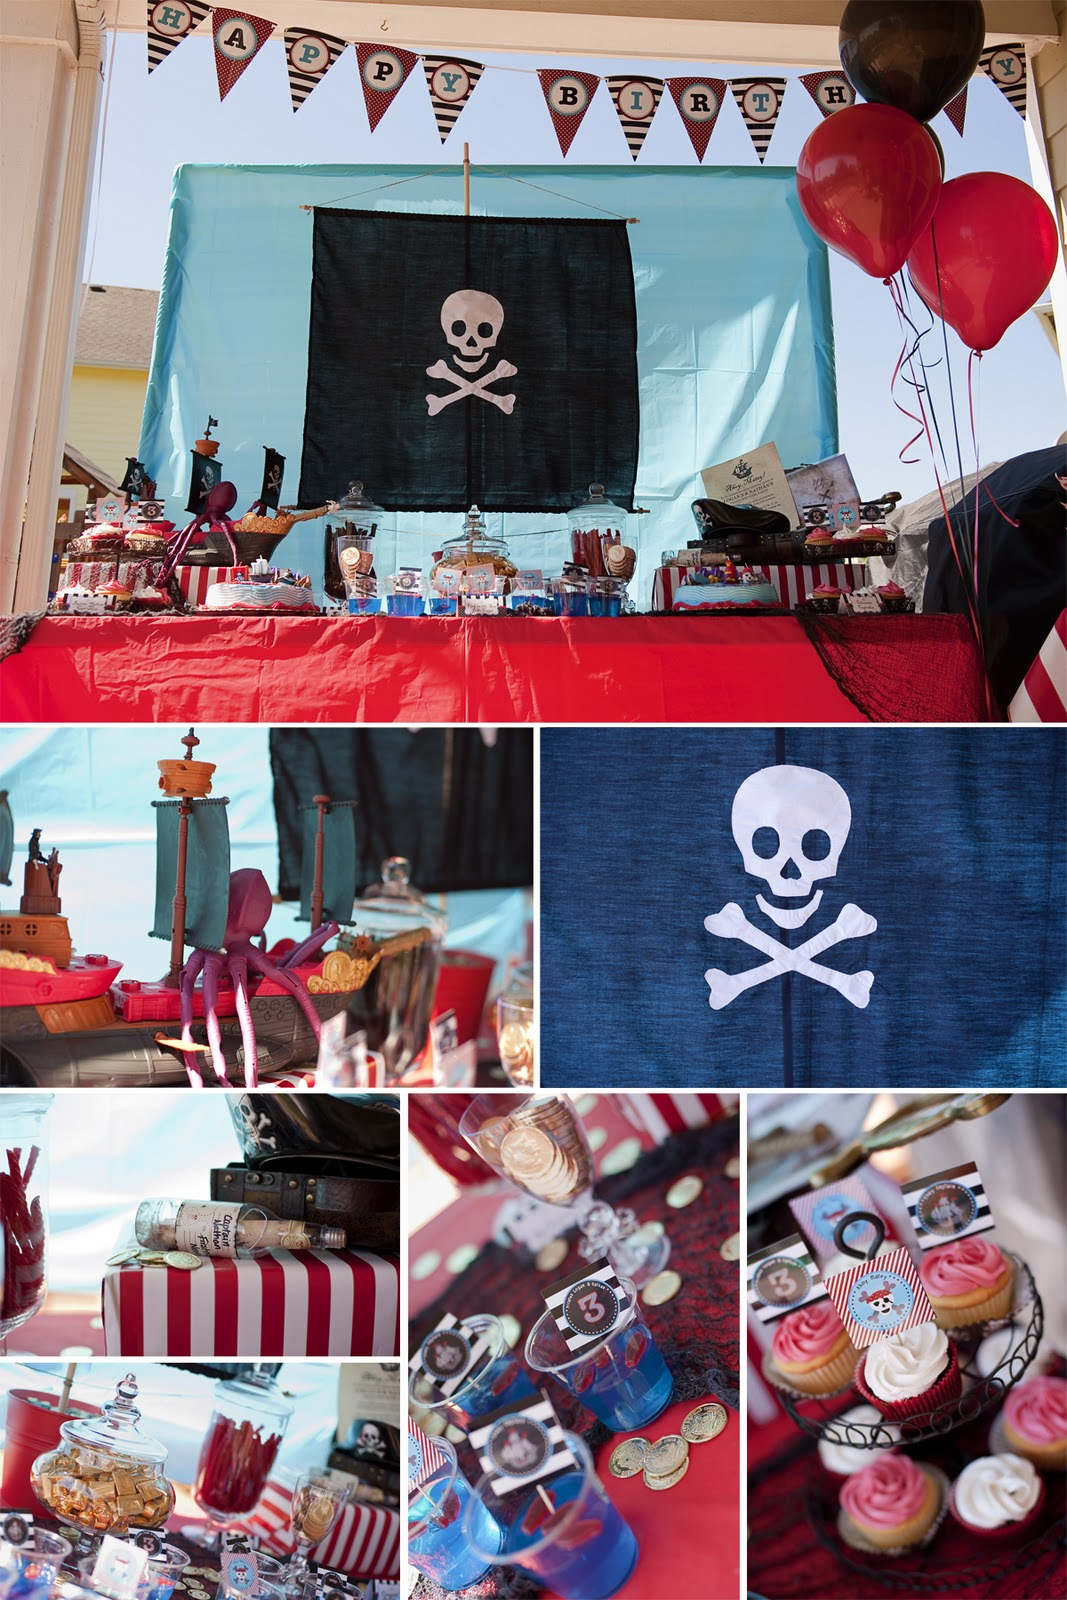 Pirate party ideas for adults erotic tube